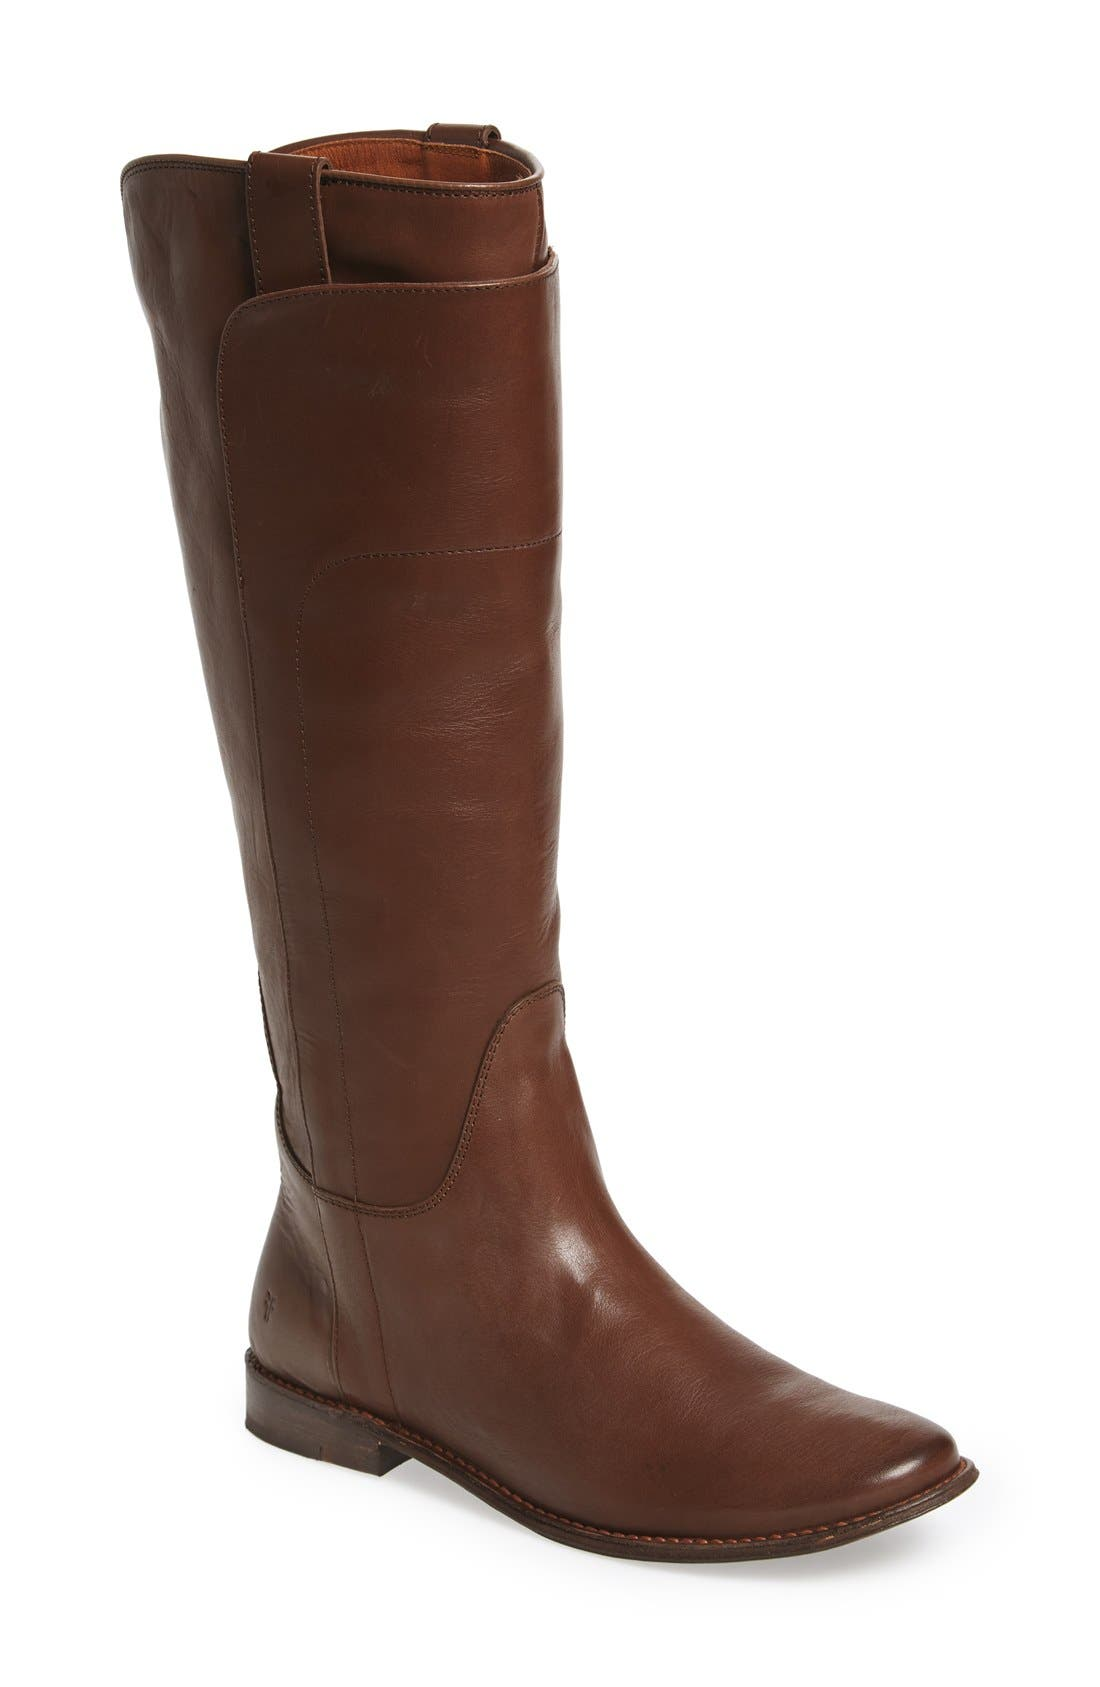 Alternate Image 1 Selected - Frye 'Paige' Tall Riding Boot (Women) (Wide Calf)